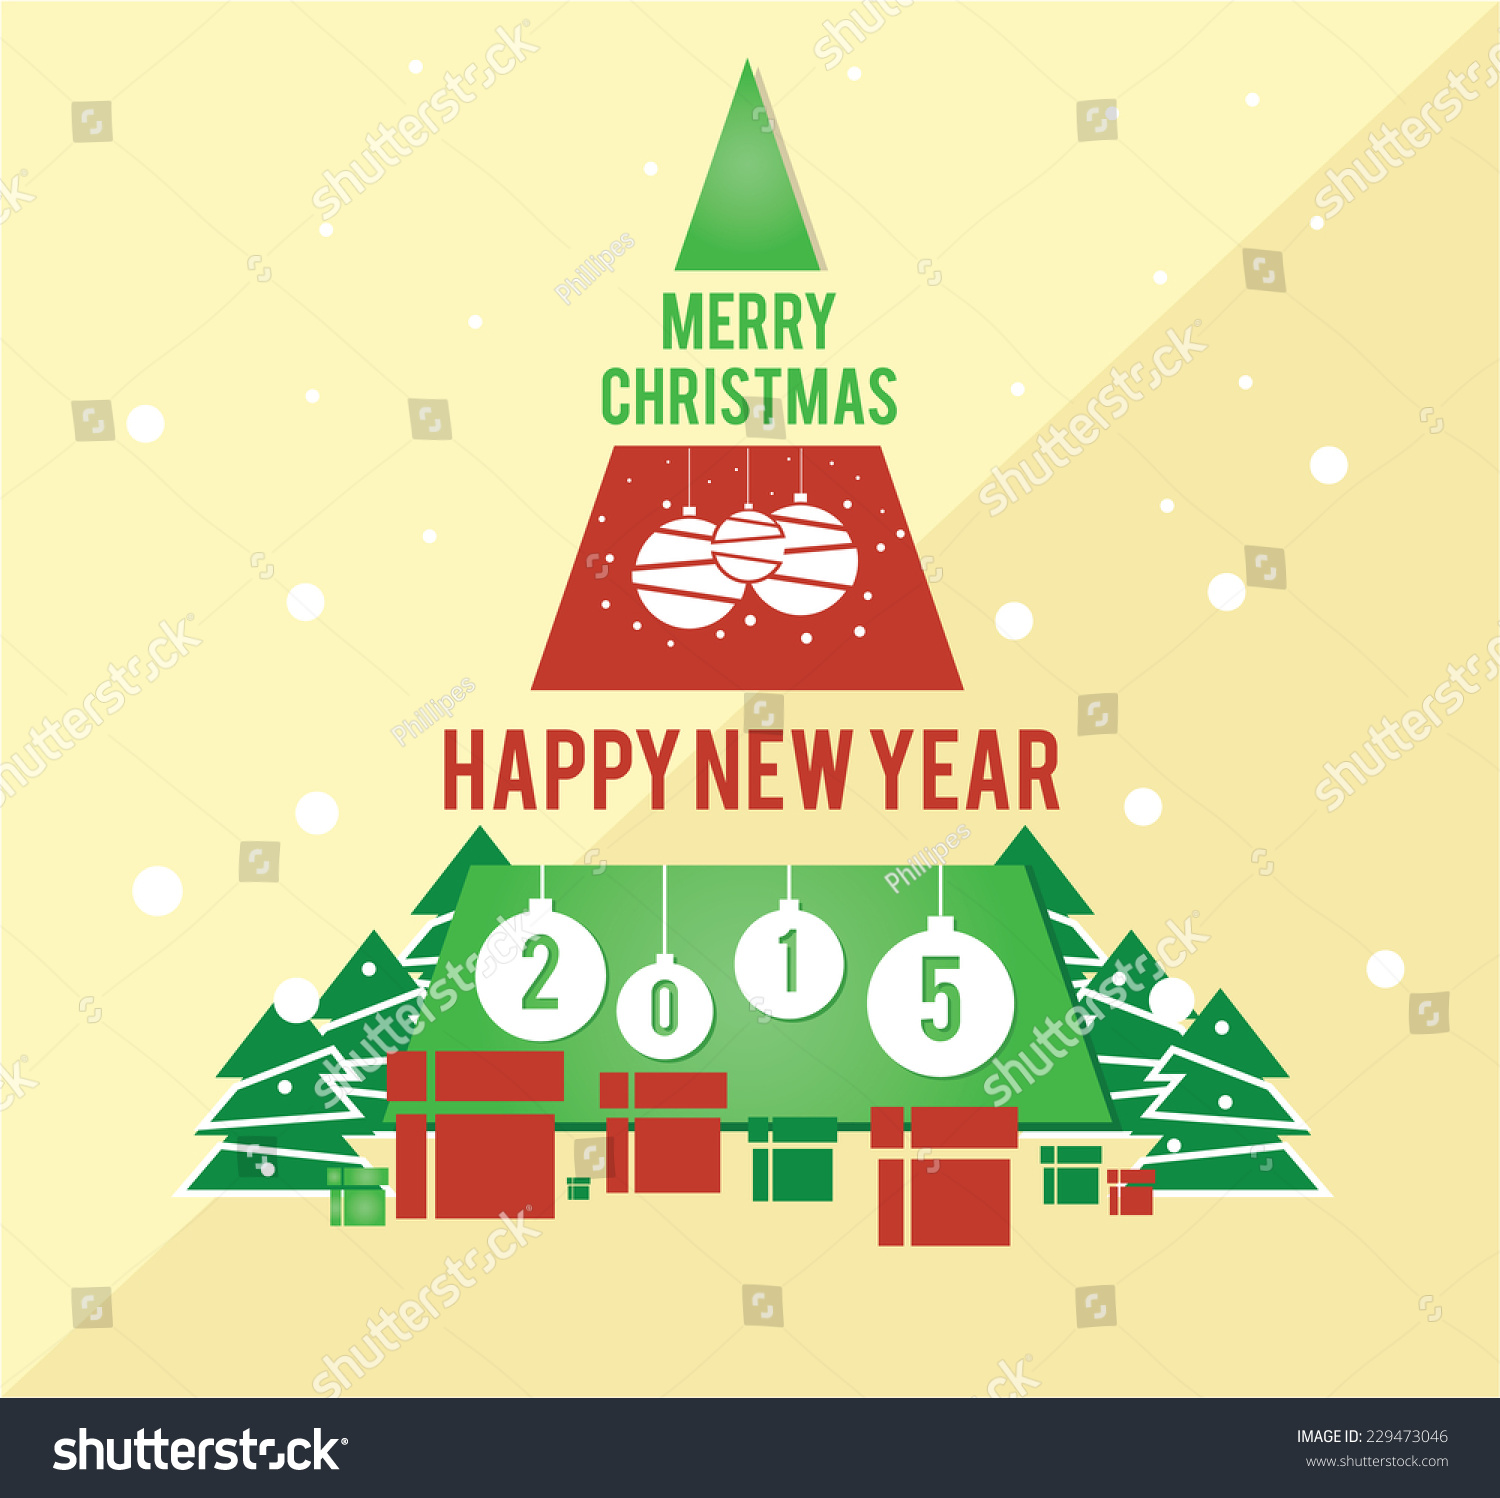 Christmas Card Family Friends Business Management Stock Vector ...